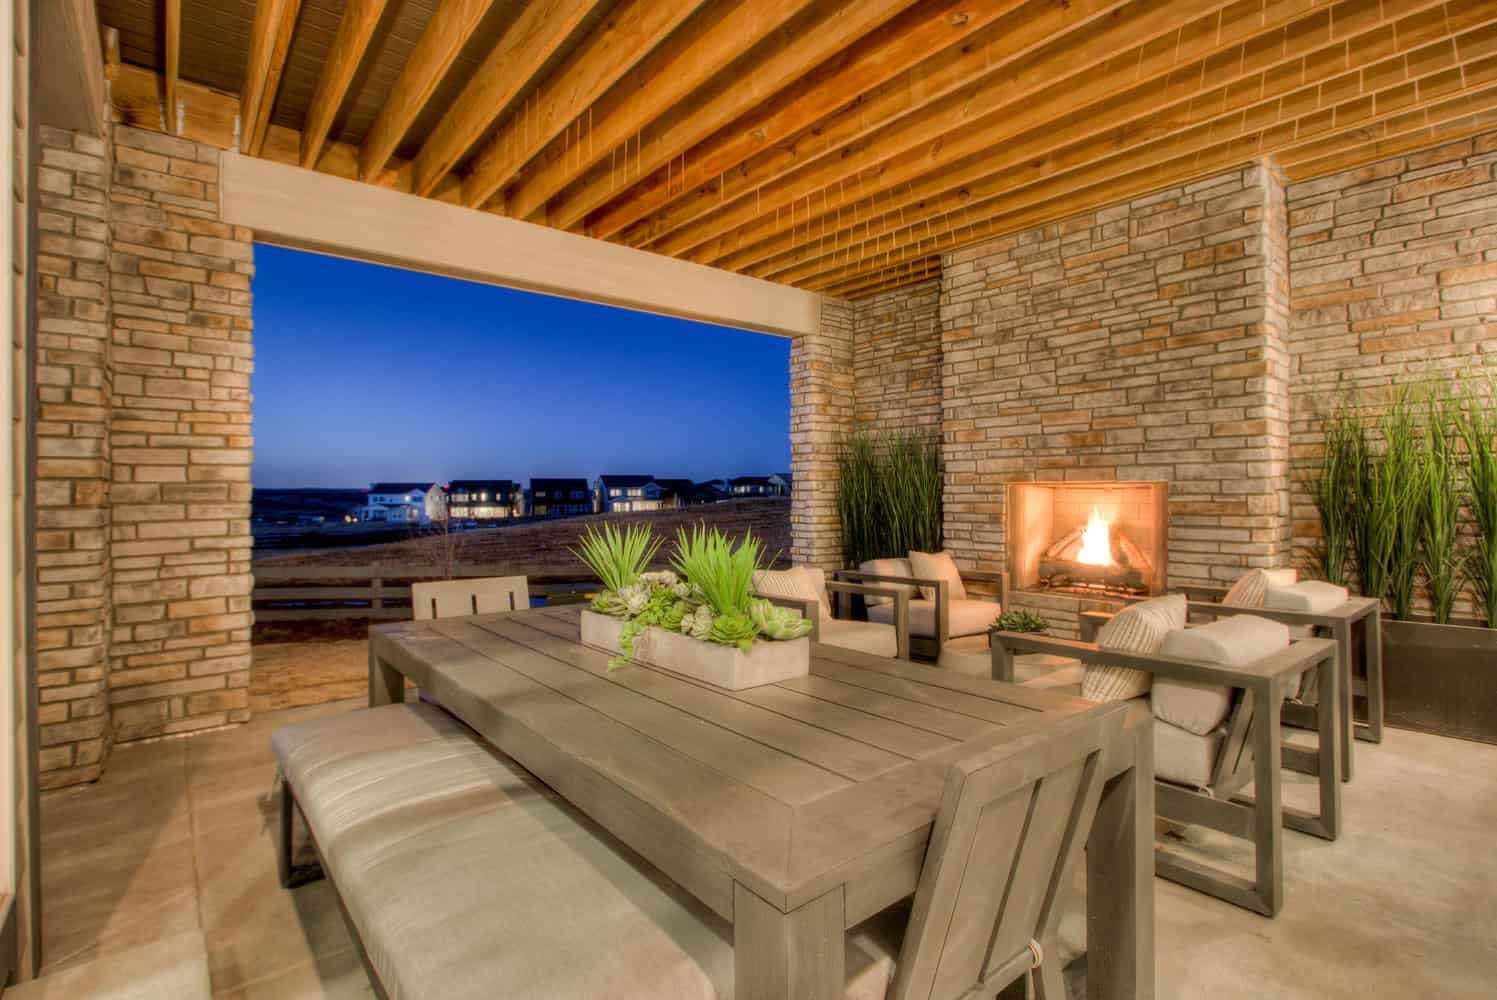 Plan 4504 | Covered Patio:Example of Residence 4504 | Covered Patio